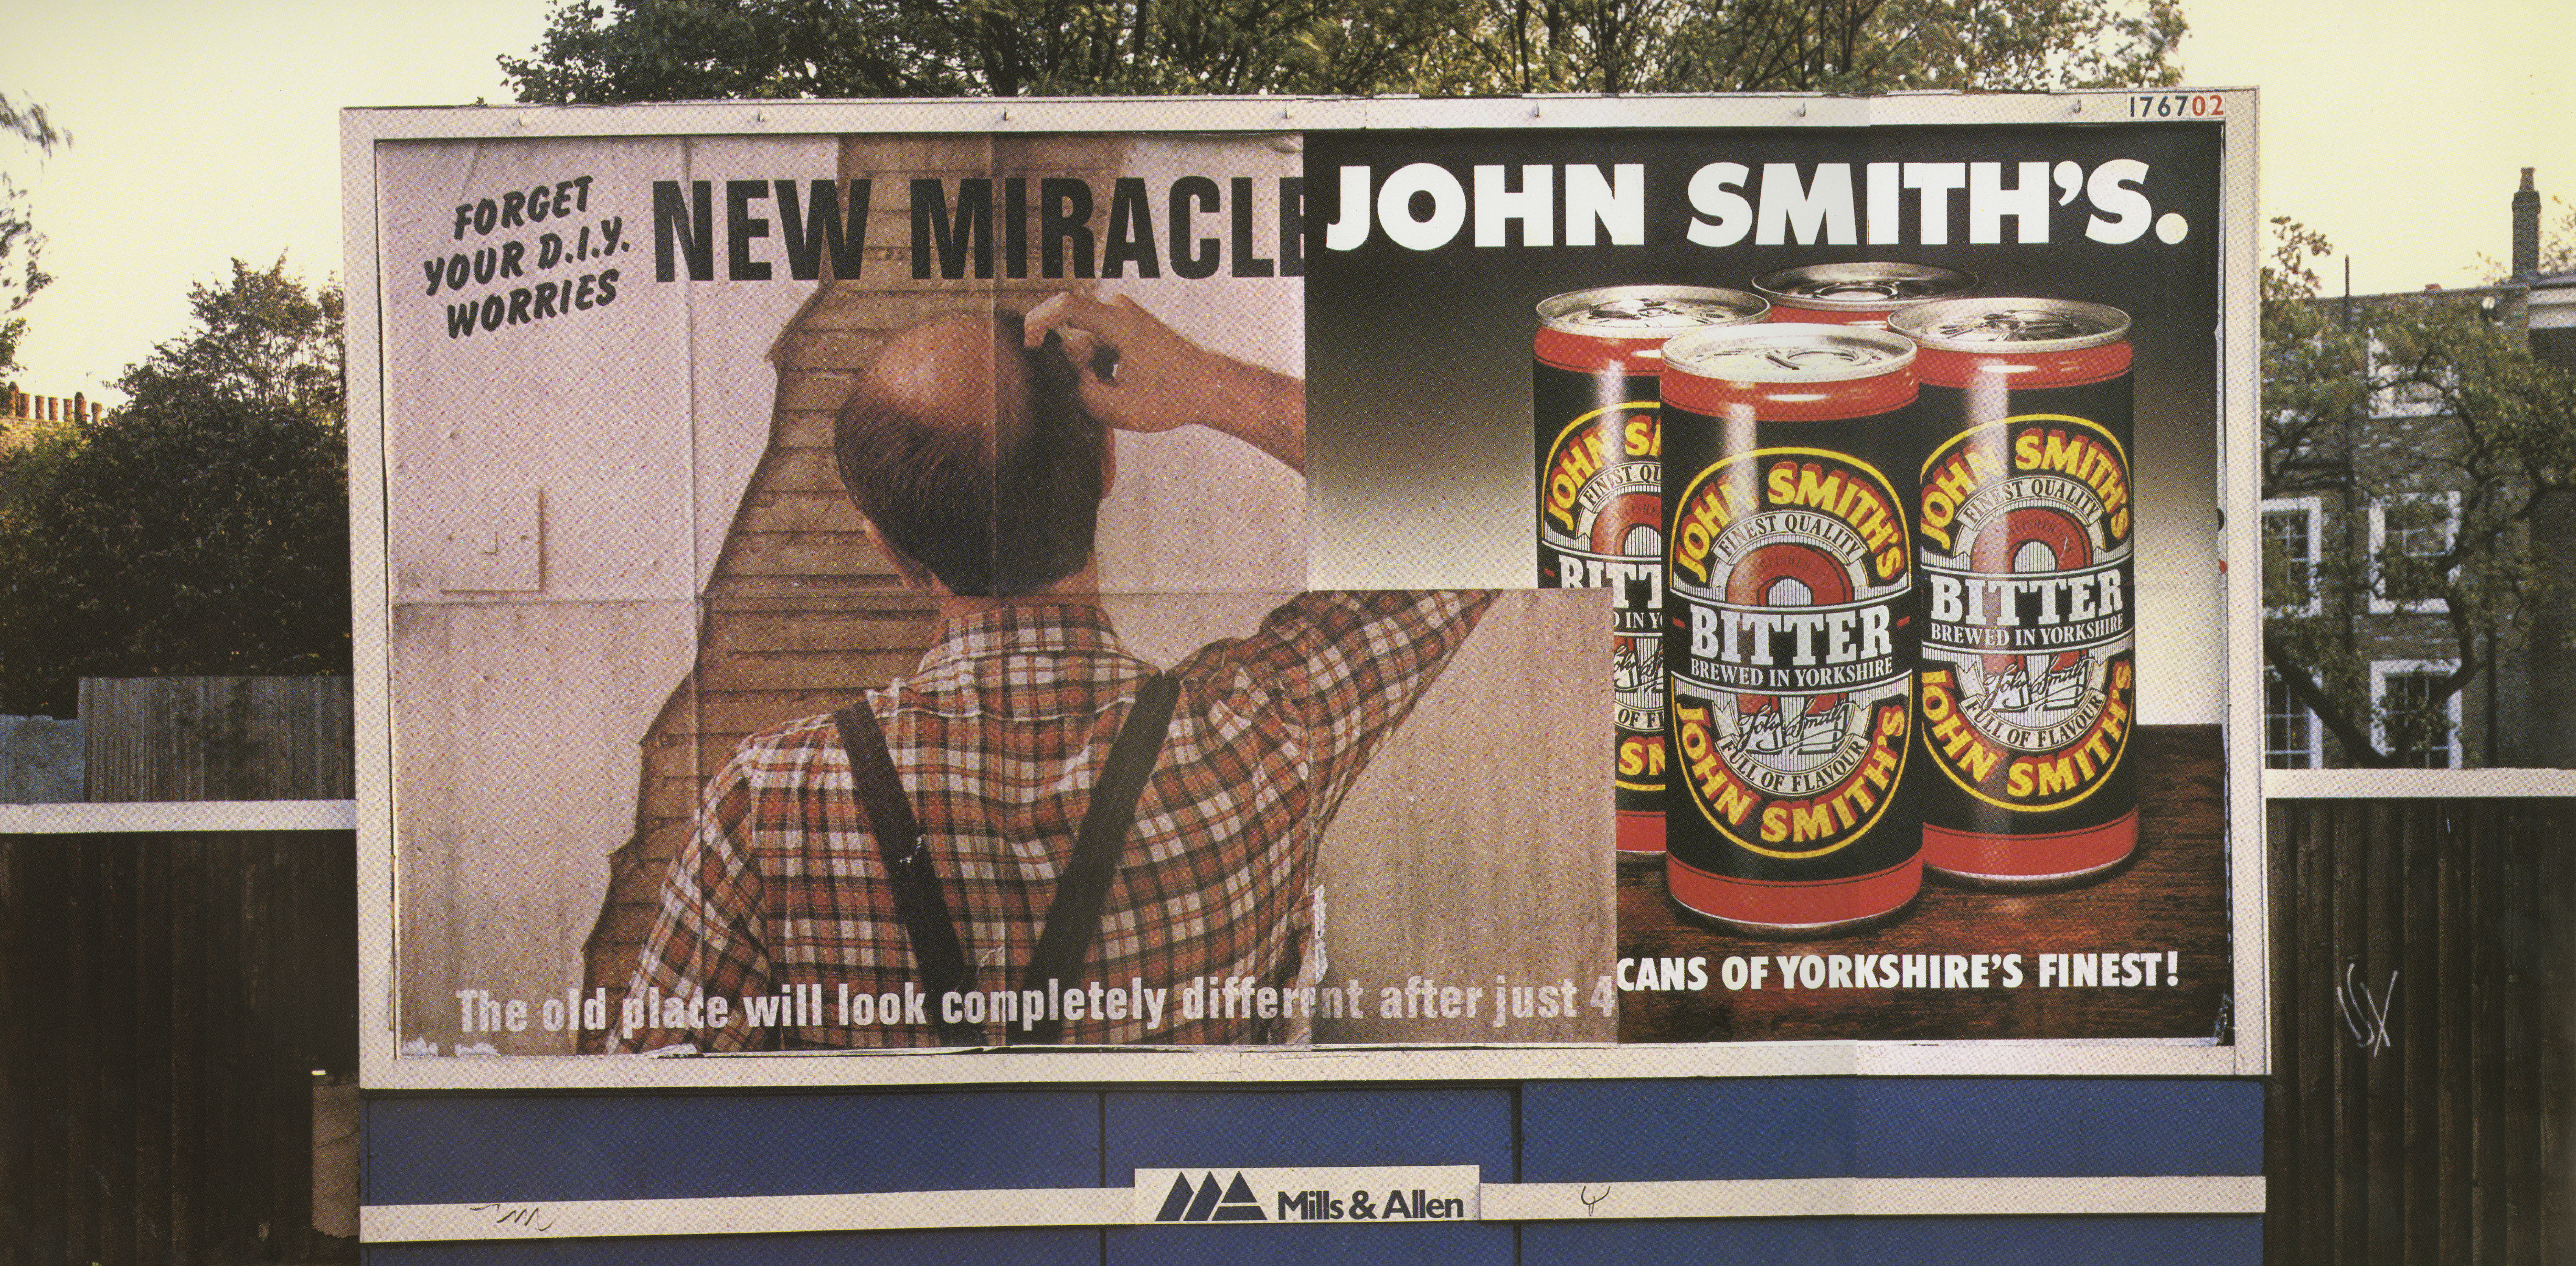 new-miracle-john-smiths-tim-riley-bmp